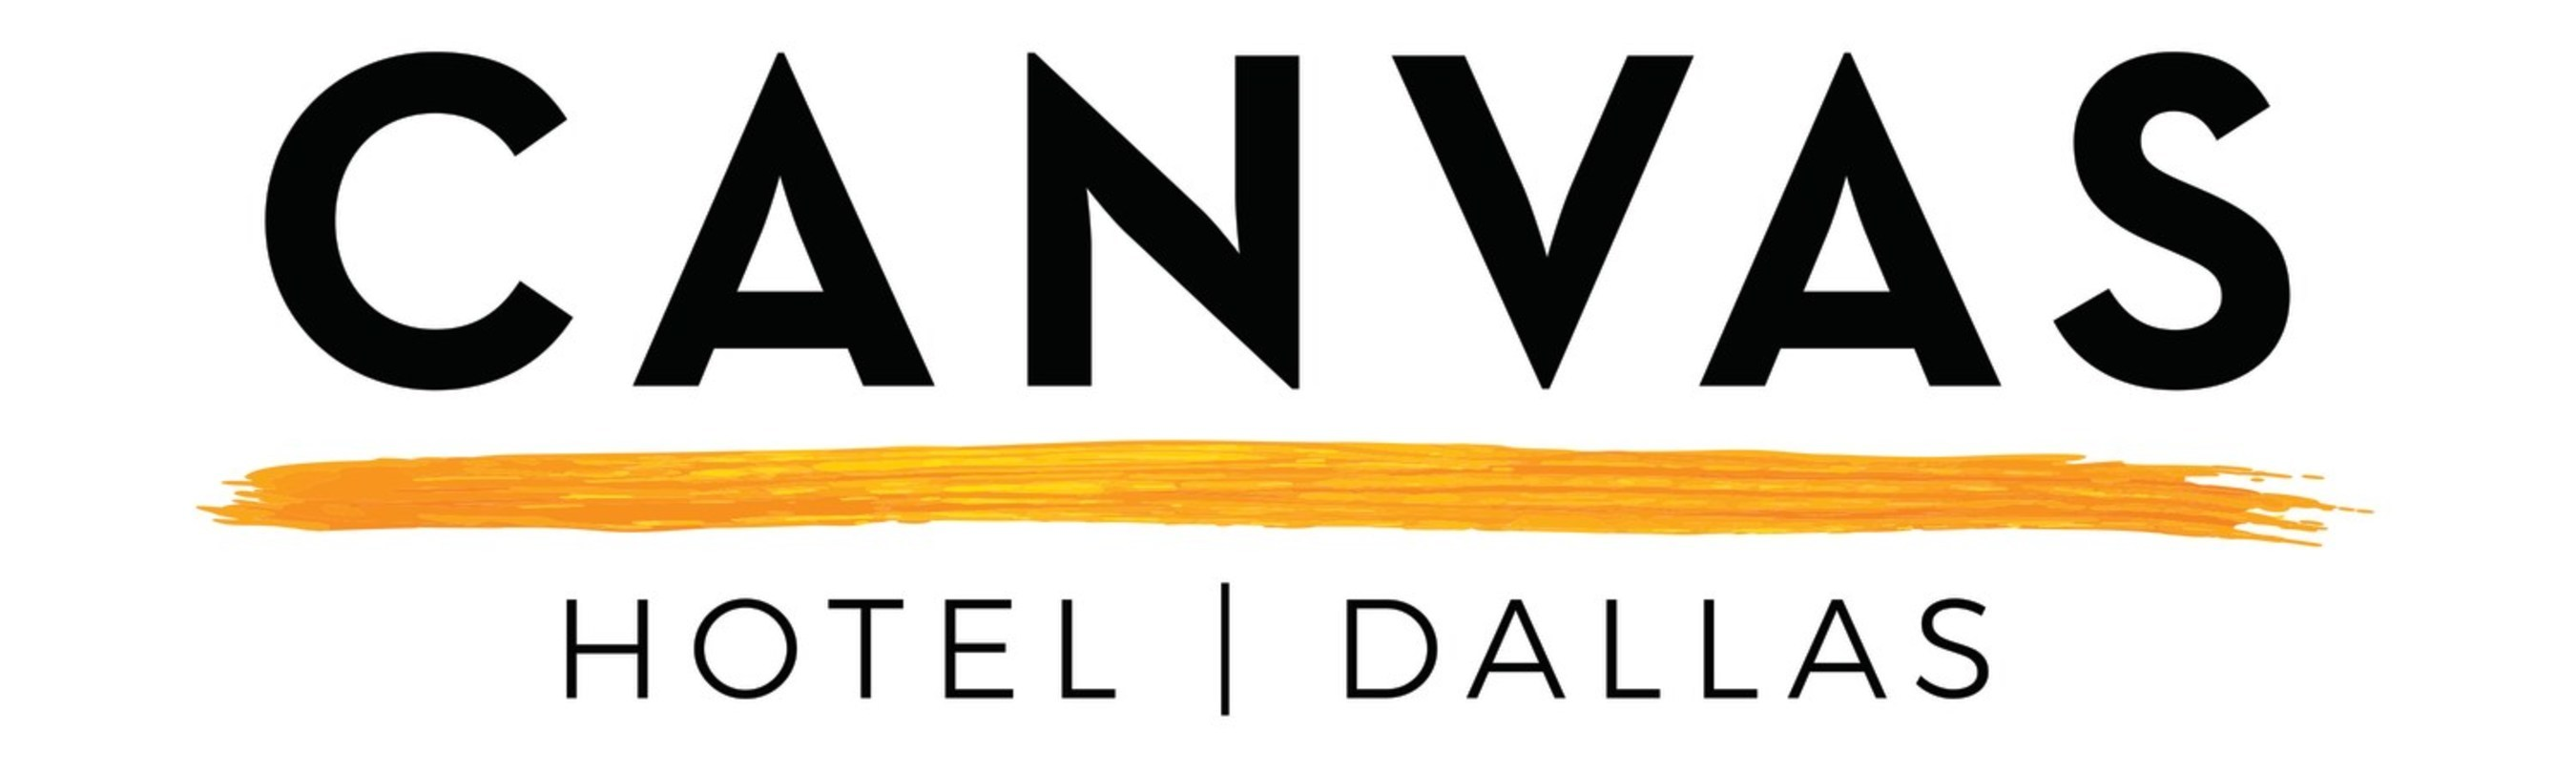 Introducing the newest boutique hotel experience in Dallas as CANVAS Hotel  Dallas debuts January 1, 2019